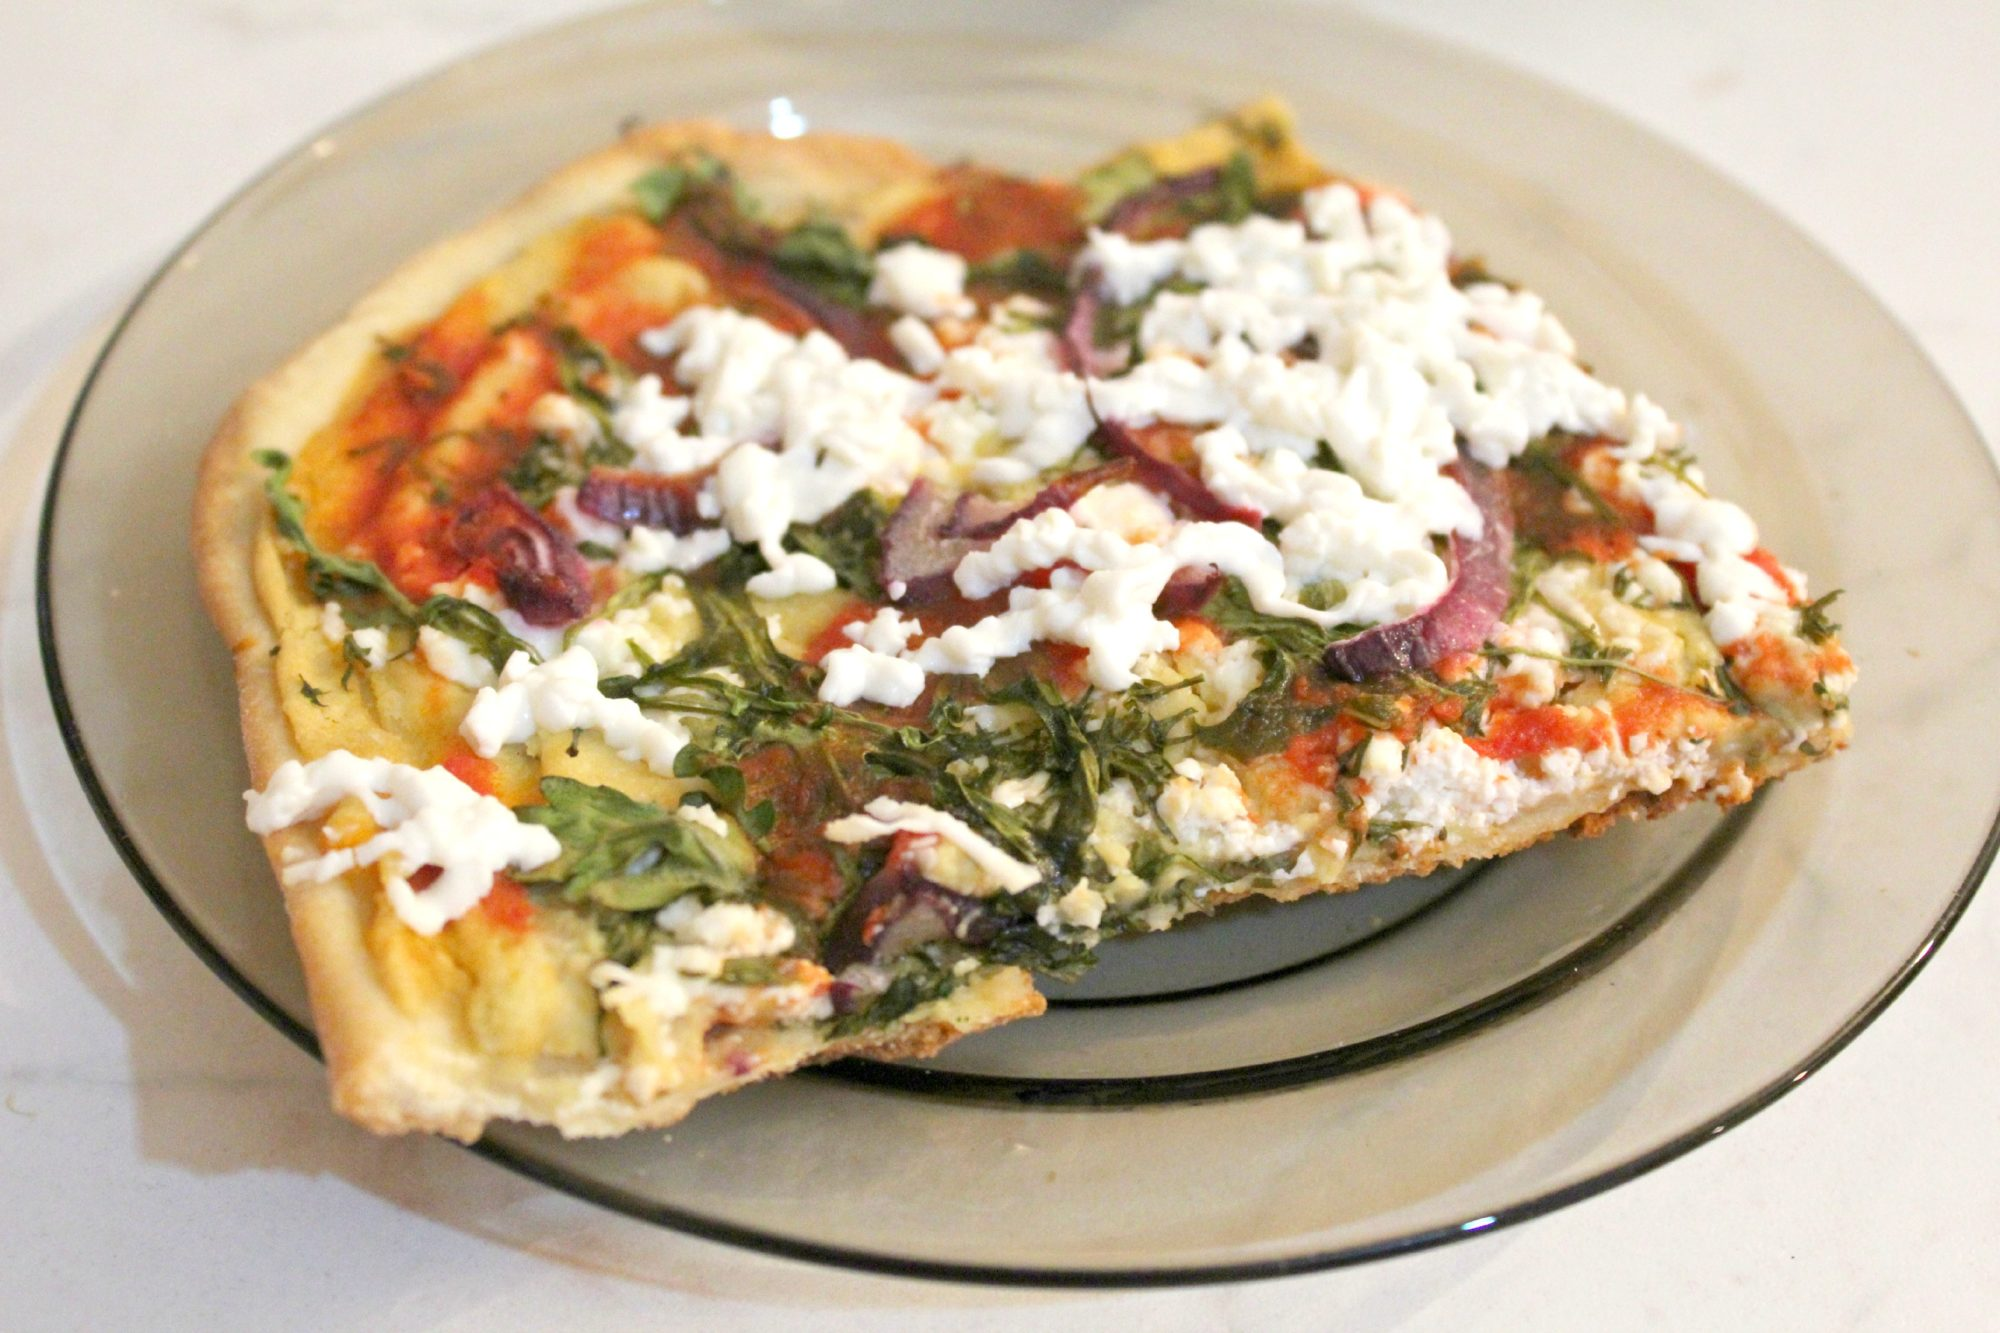 Hummus pizza with feta and arugula - The Seaman Mom